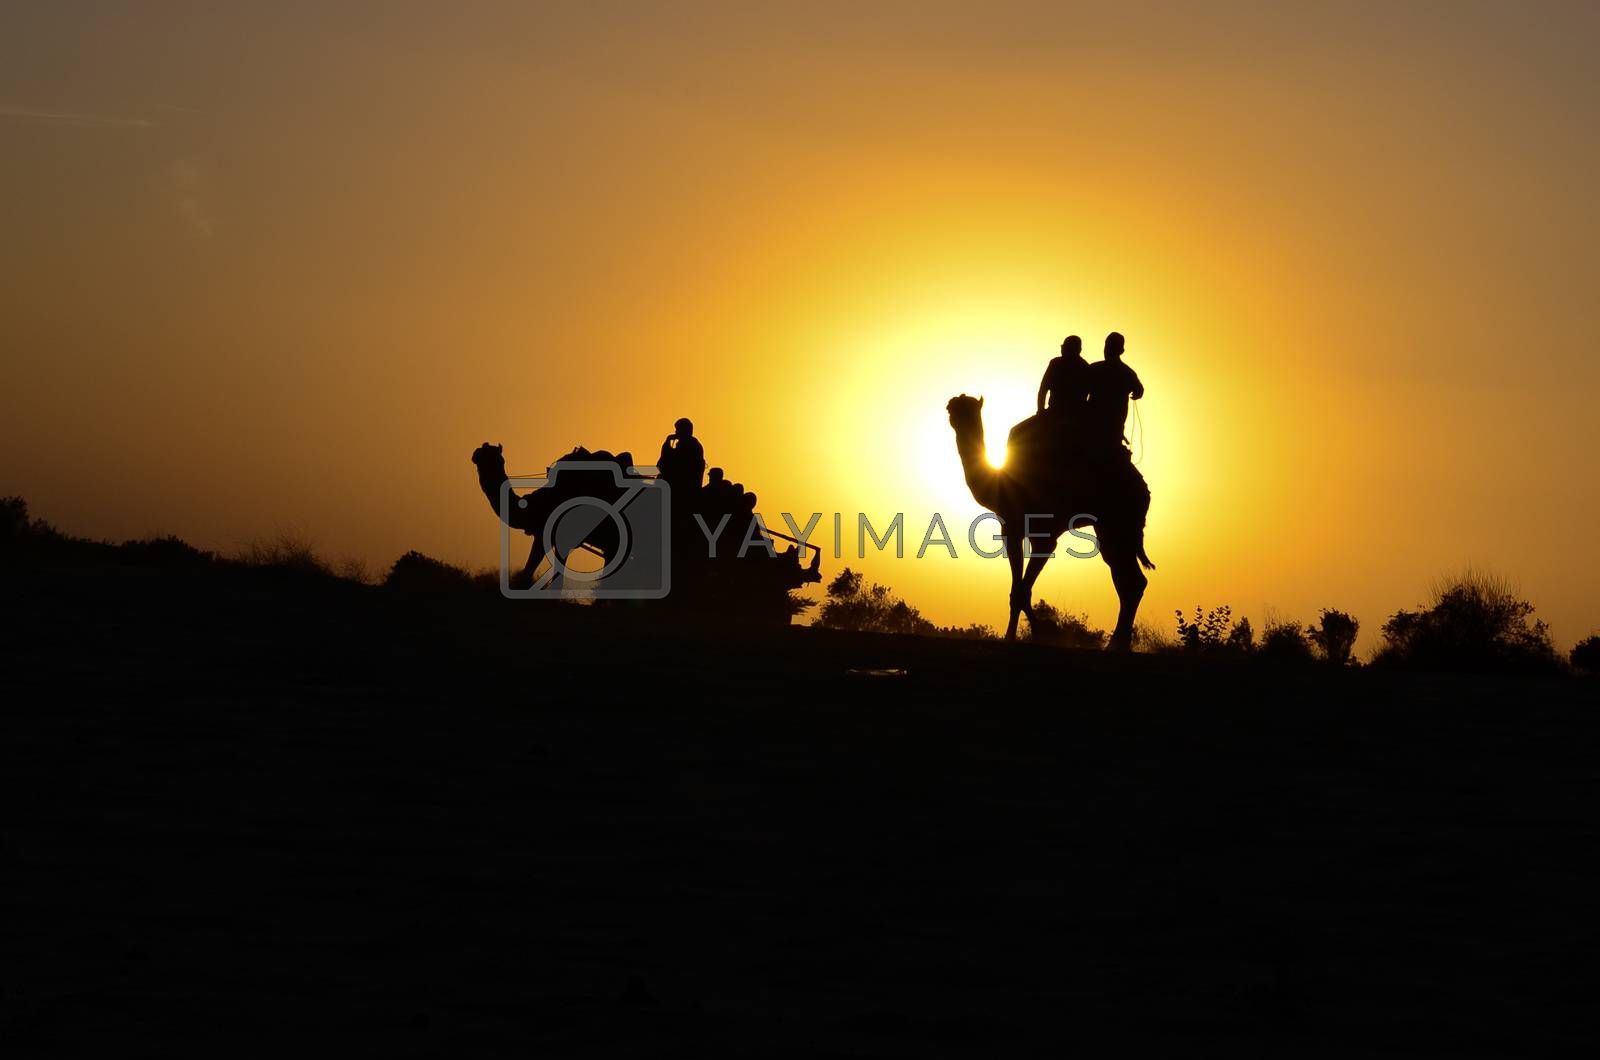 Silhouette of a camel cart and camel carrying tourists in Sam sand dunes, Jaisalmer. Located in the midst of the Thar Desert, these sand dunes are amongst the most famous ones in Rajasthan, India